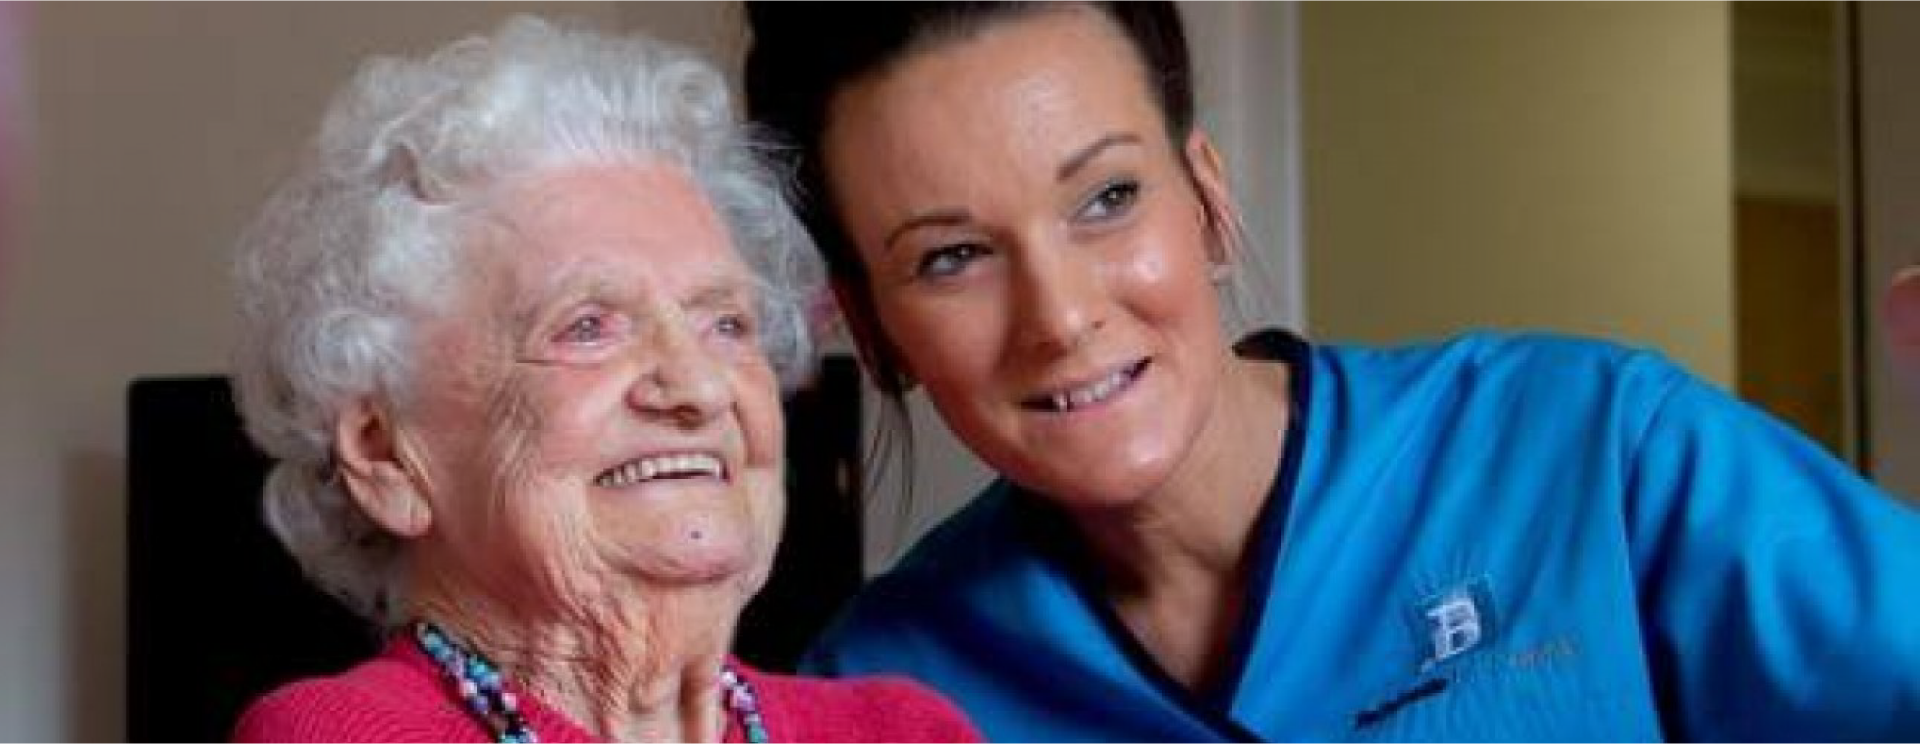 Care home residents share the love this Valentine's Day